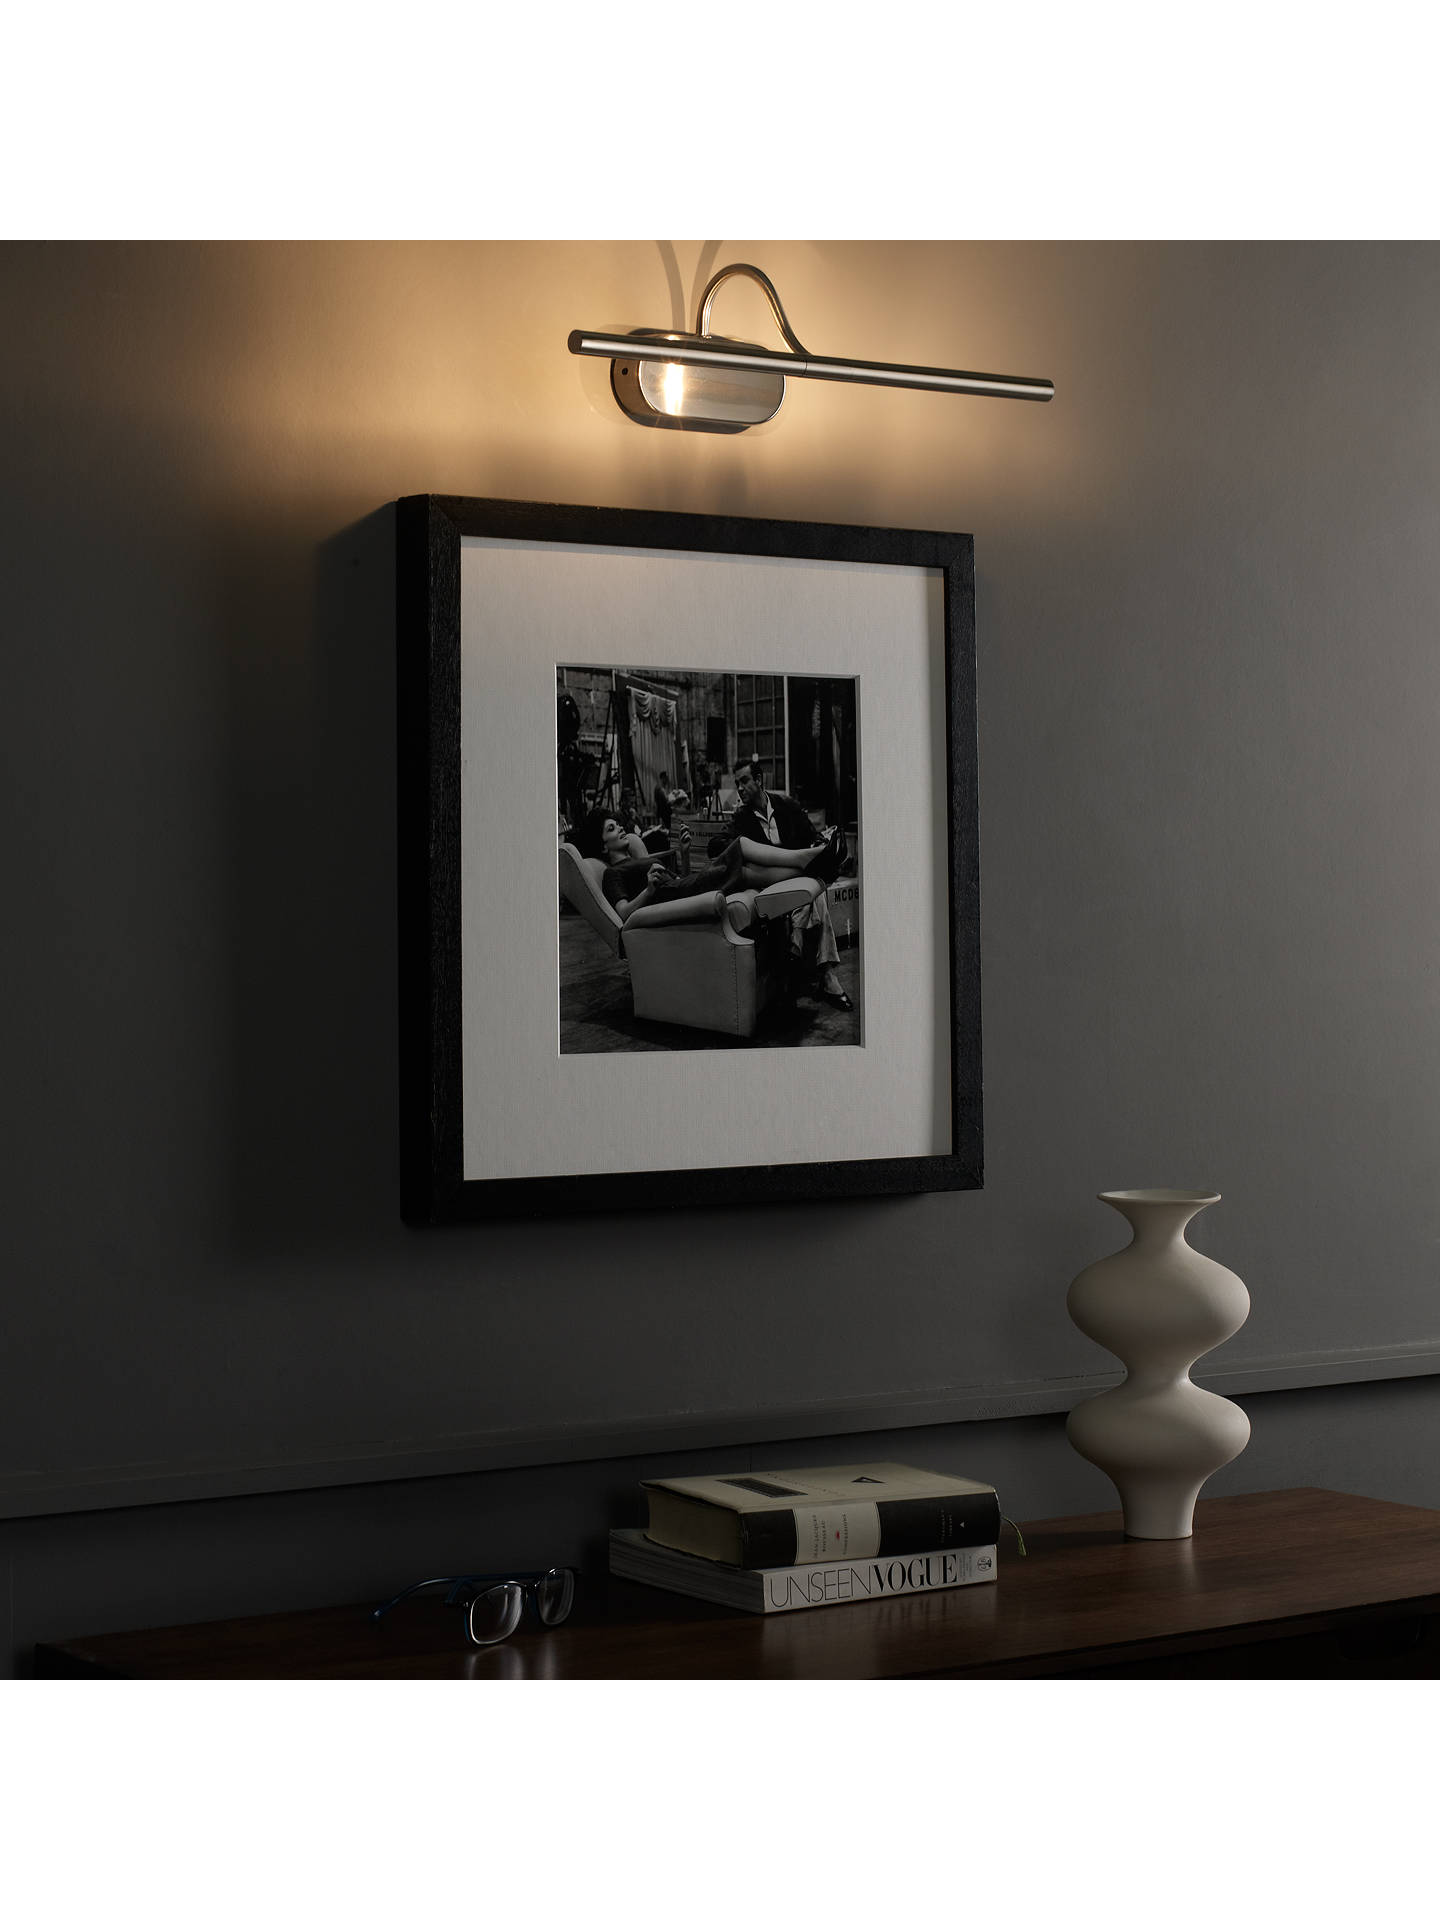 BuyJohn Lewis & Partners Litho LED Wall Light, Satin Nickel Online at johnlewis.com